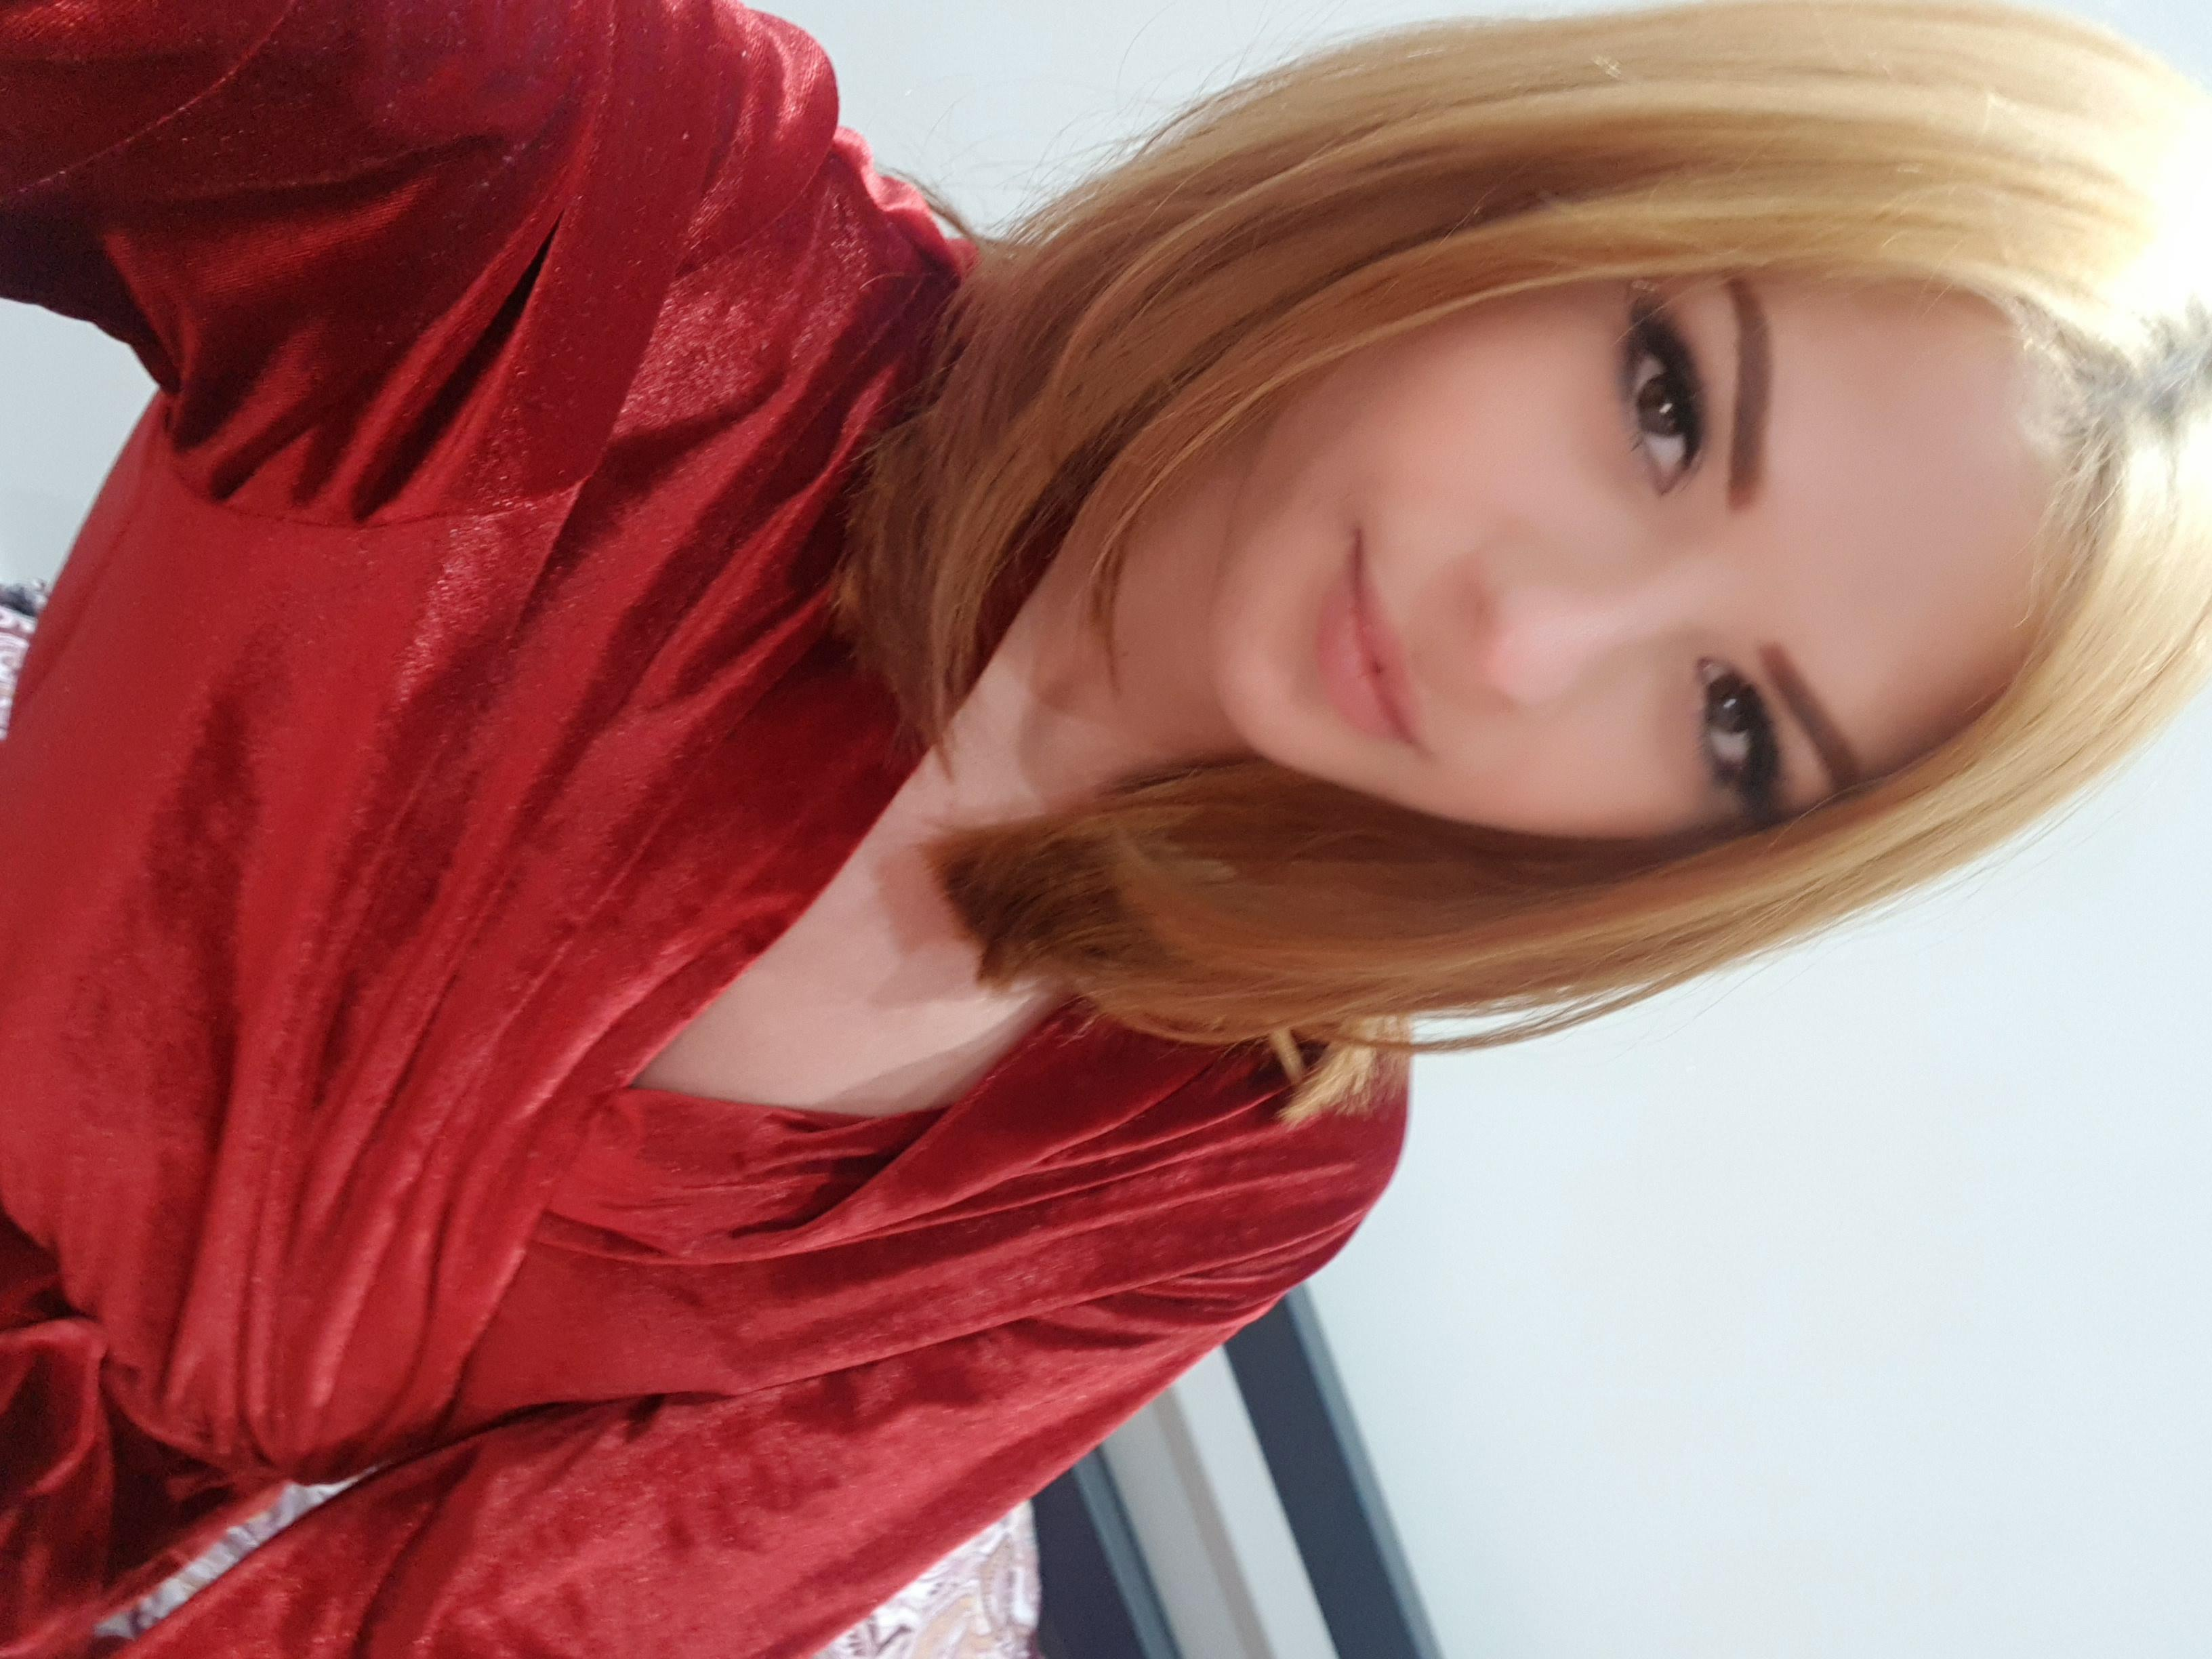 Ensley from Dior Escorts